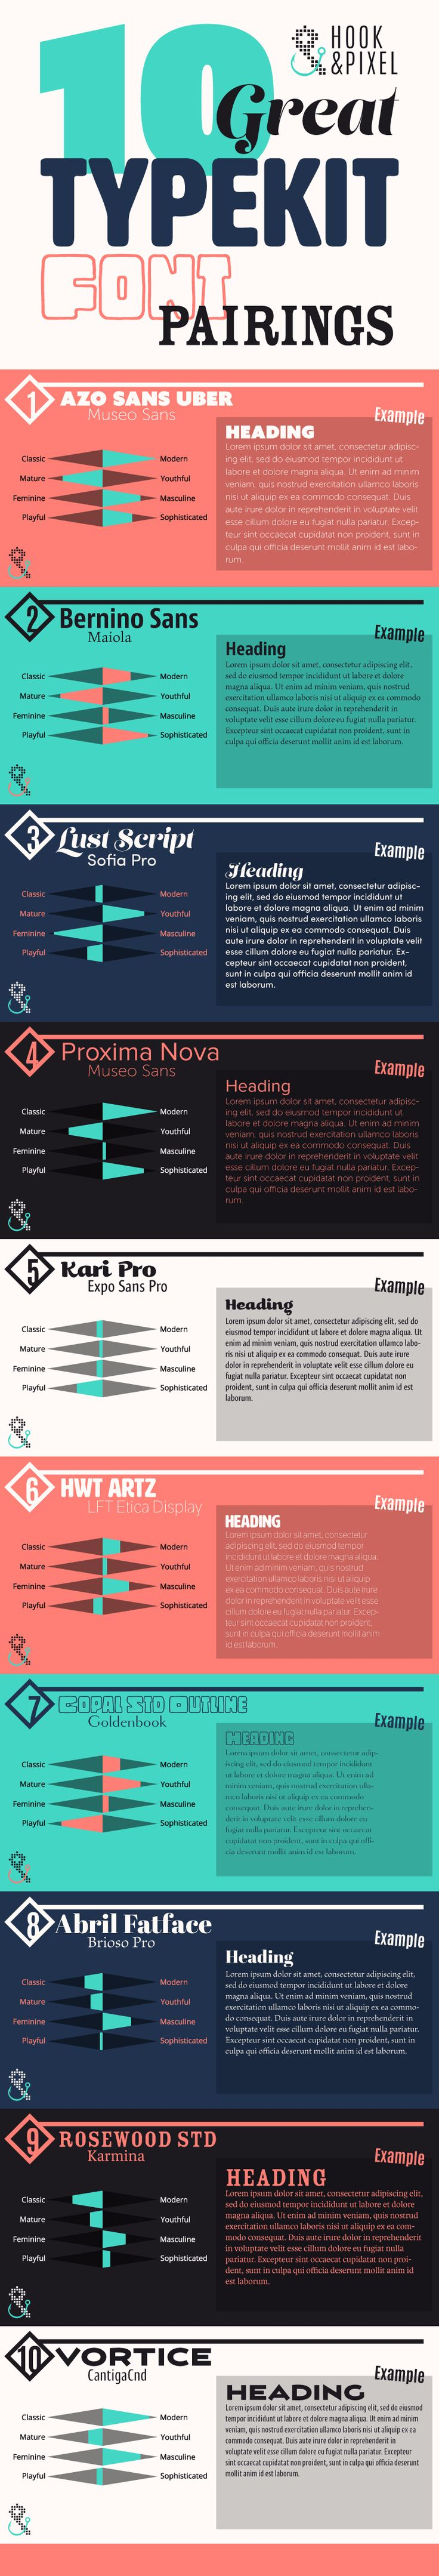 10 Great Typekit Font Pairings  Adobe's Typekit Has Some Nice Stuff   Originally published on Sep, 24 2015  Editors Note: Woah! It's been an entire year since Adobe took over Typekit and integrated it into their platform. And they have been doing a lot of updates. So why not us? We got rid of